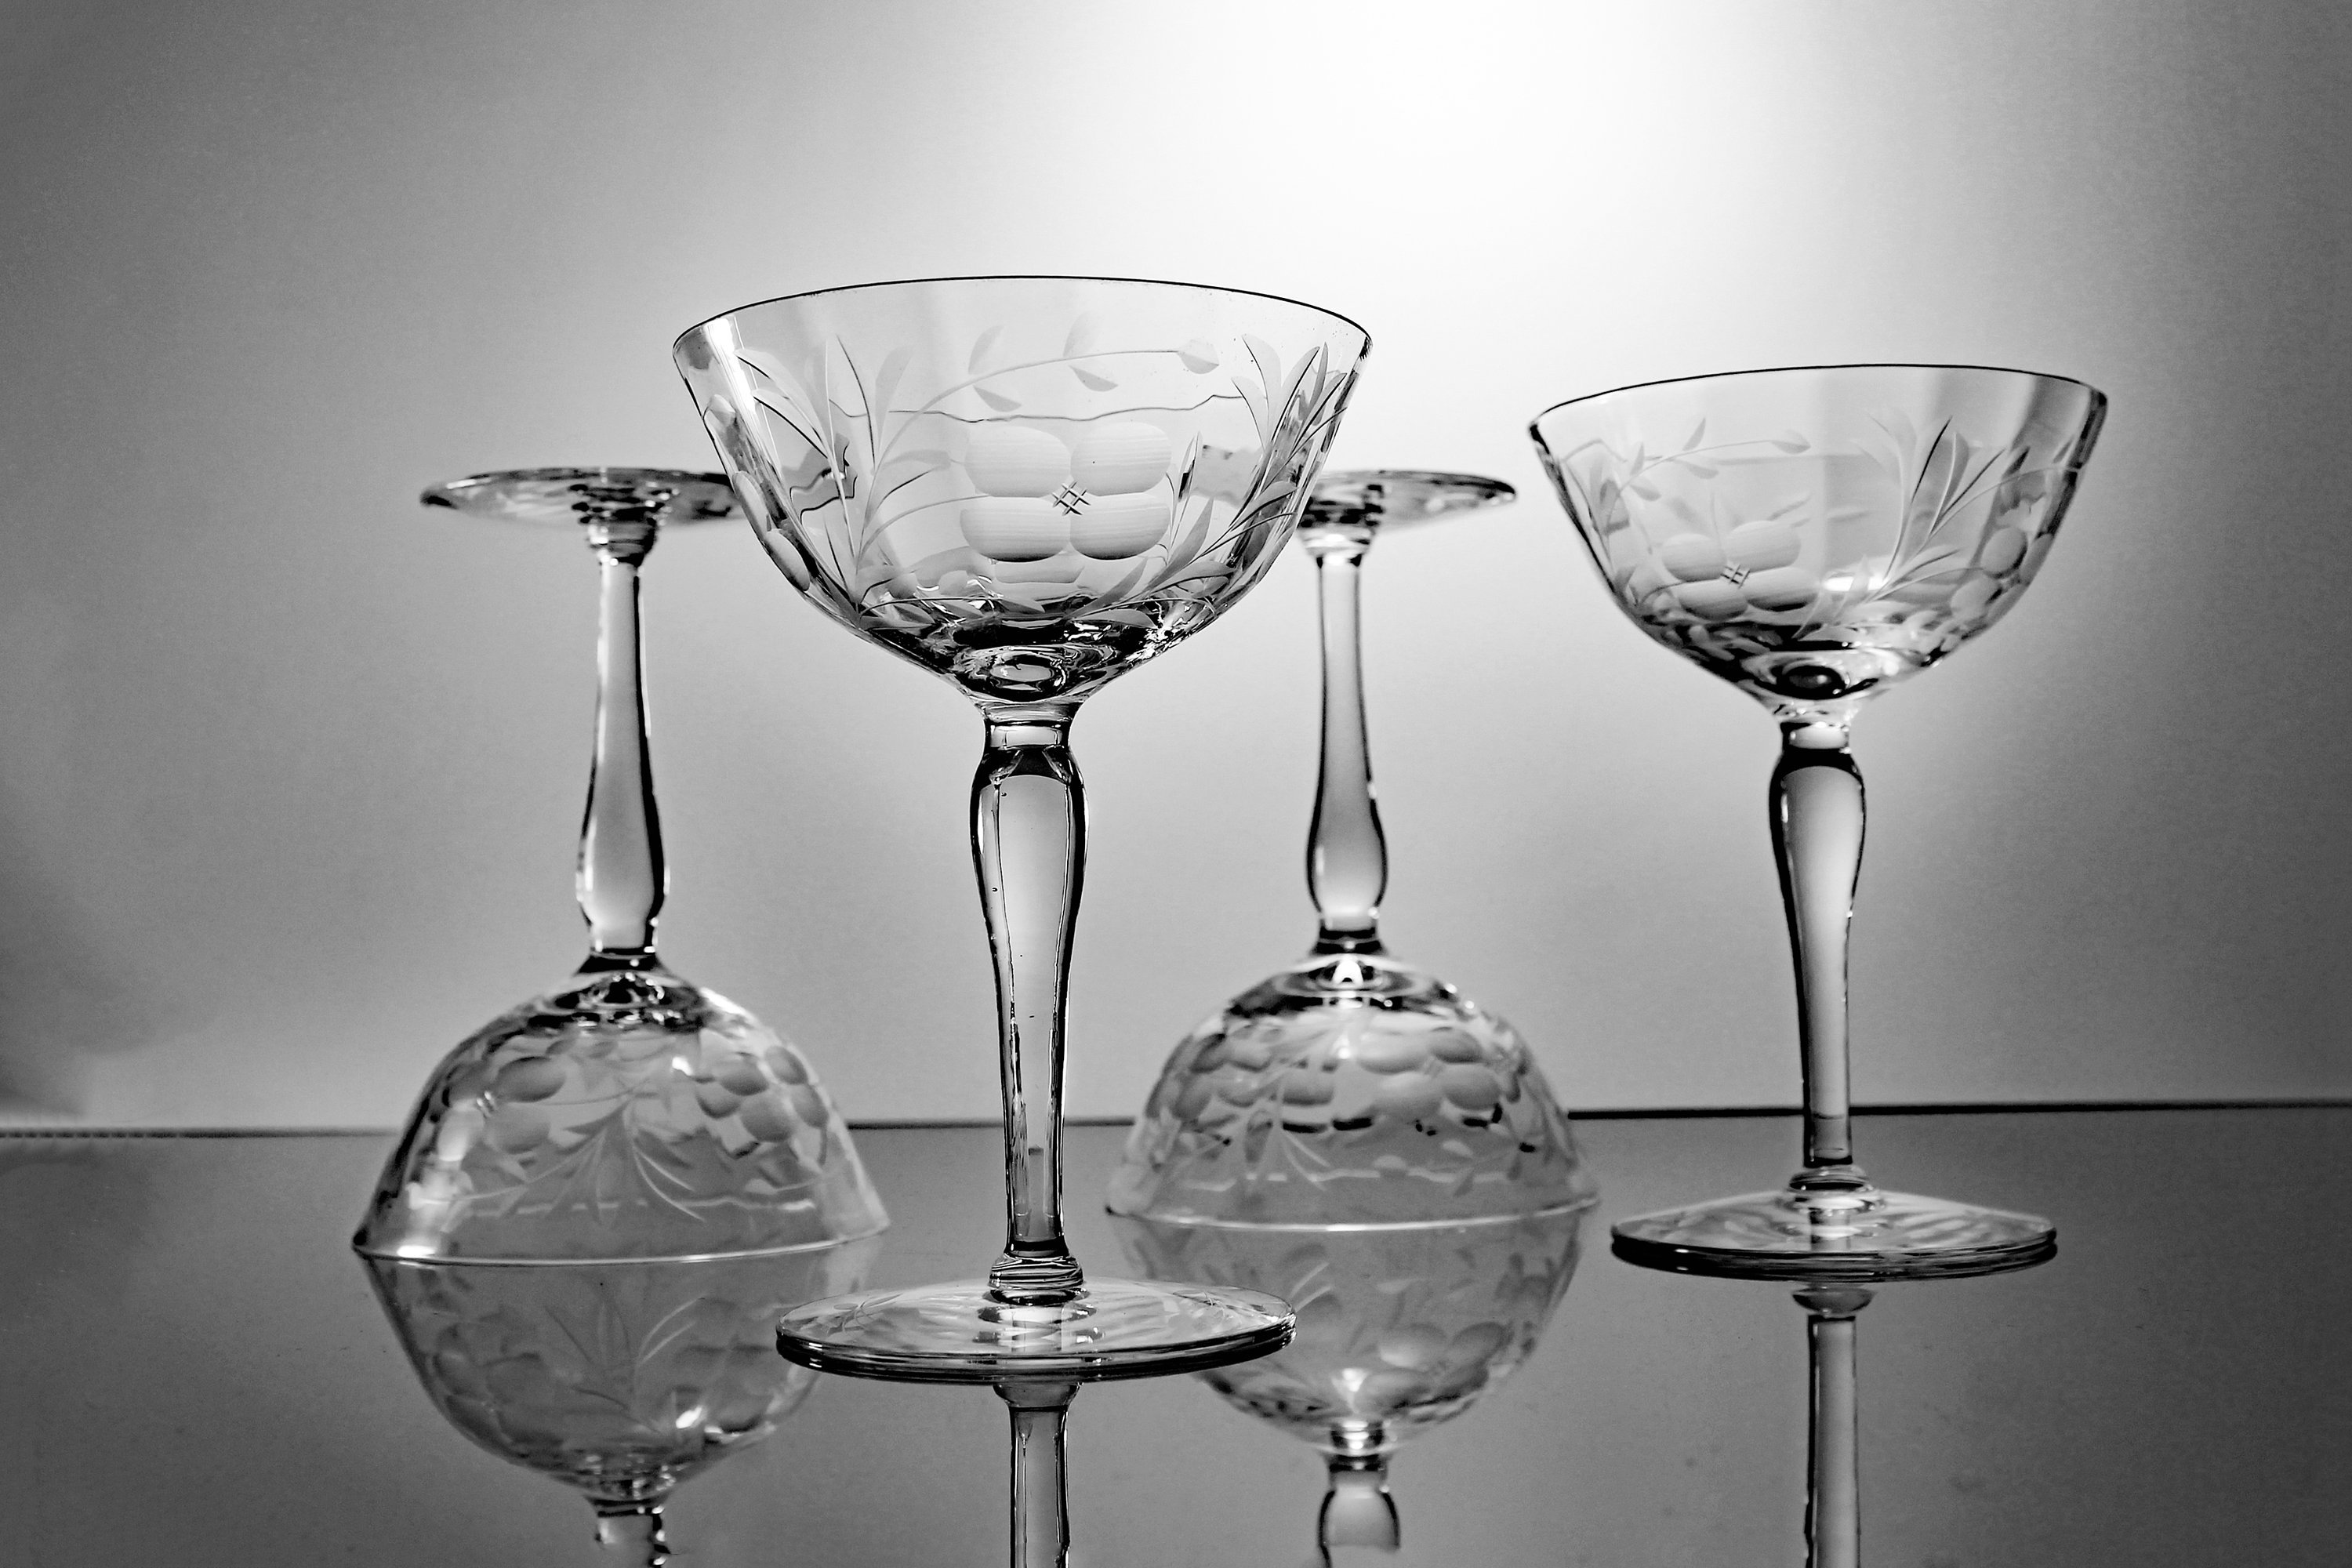 Wheel Cut Champagne Glasses Wine Glasses Coupe Optic Floral And Leaf Design Set Of 4 Barware